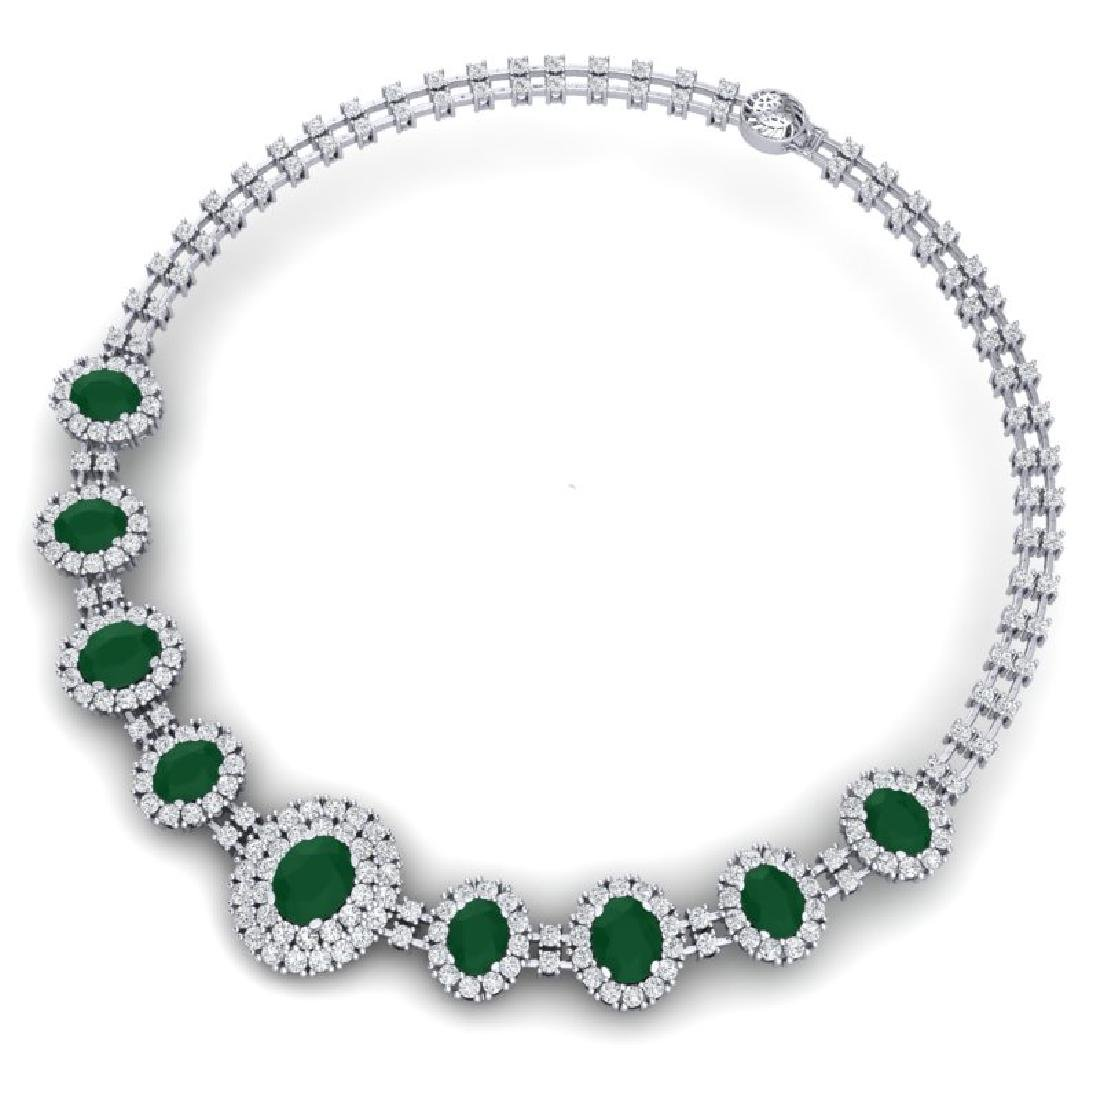 45.69 CTW Royalty Emerald & VS Diamond Necklace 18K - 2